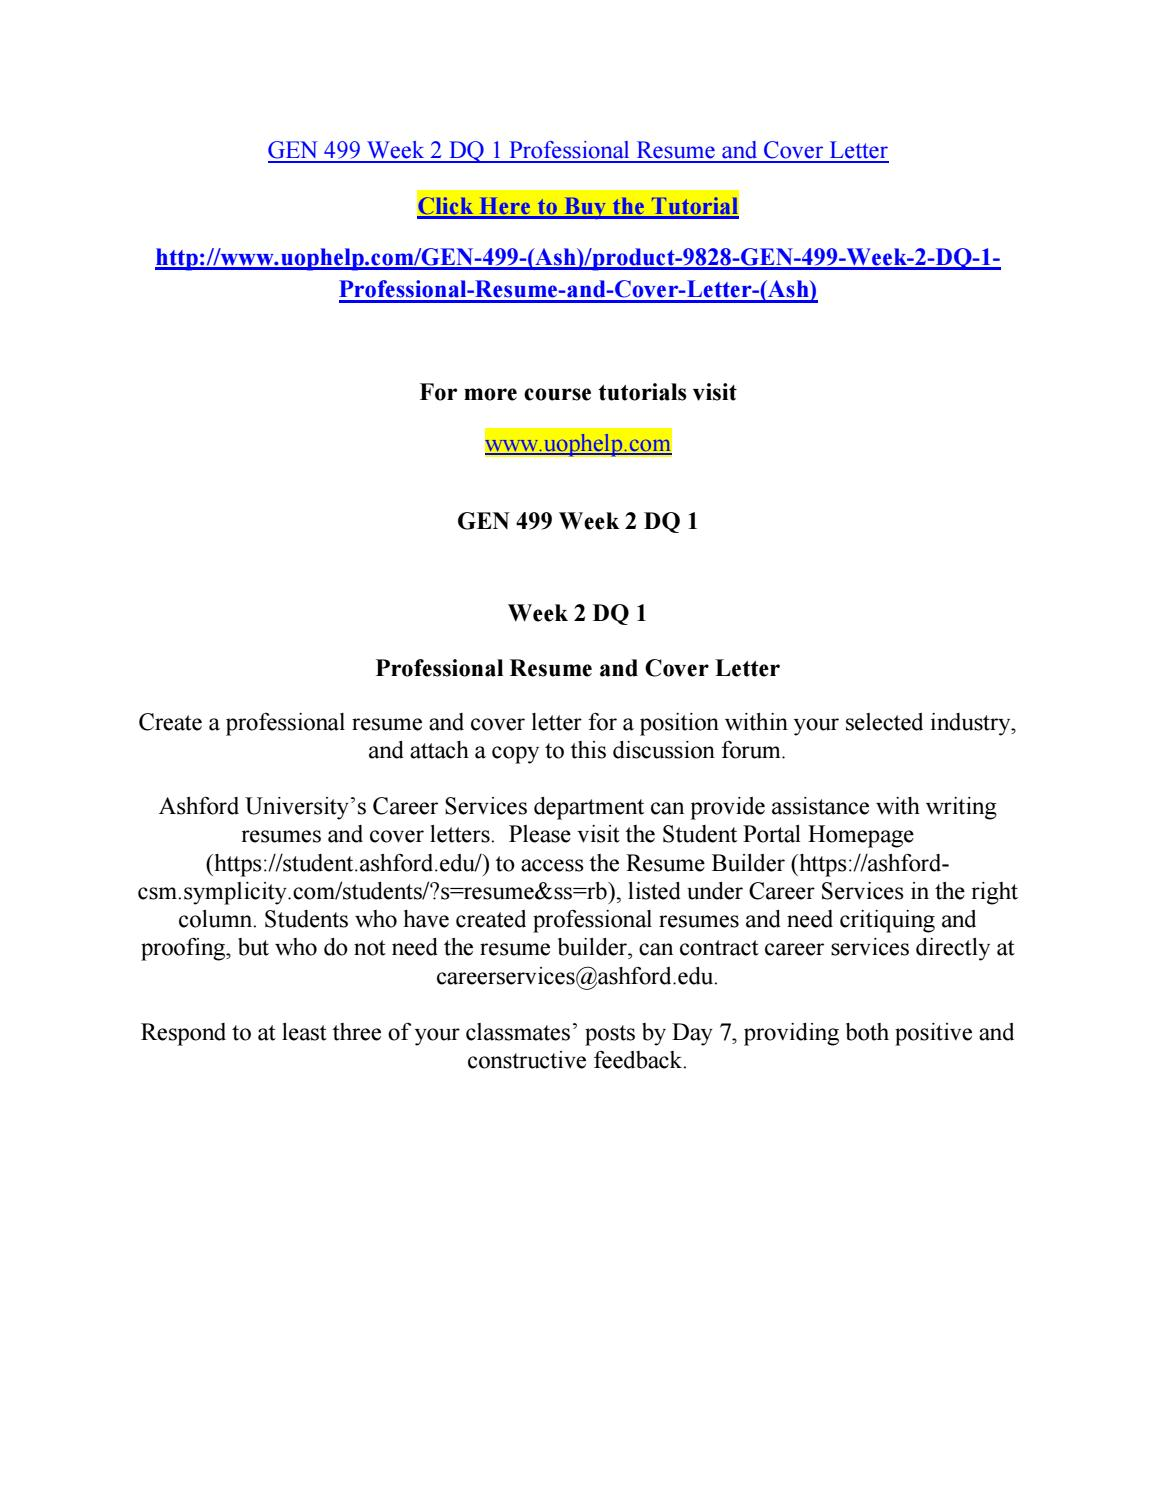 Gen 499 week 2 dq 1 professional resume and cover letter by ...